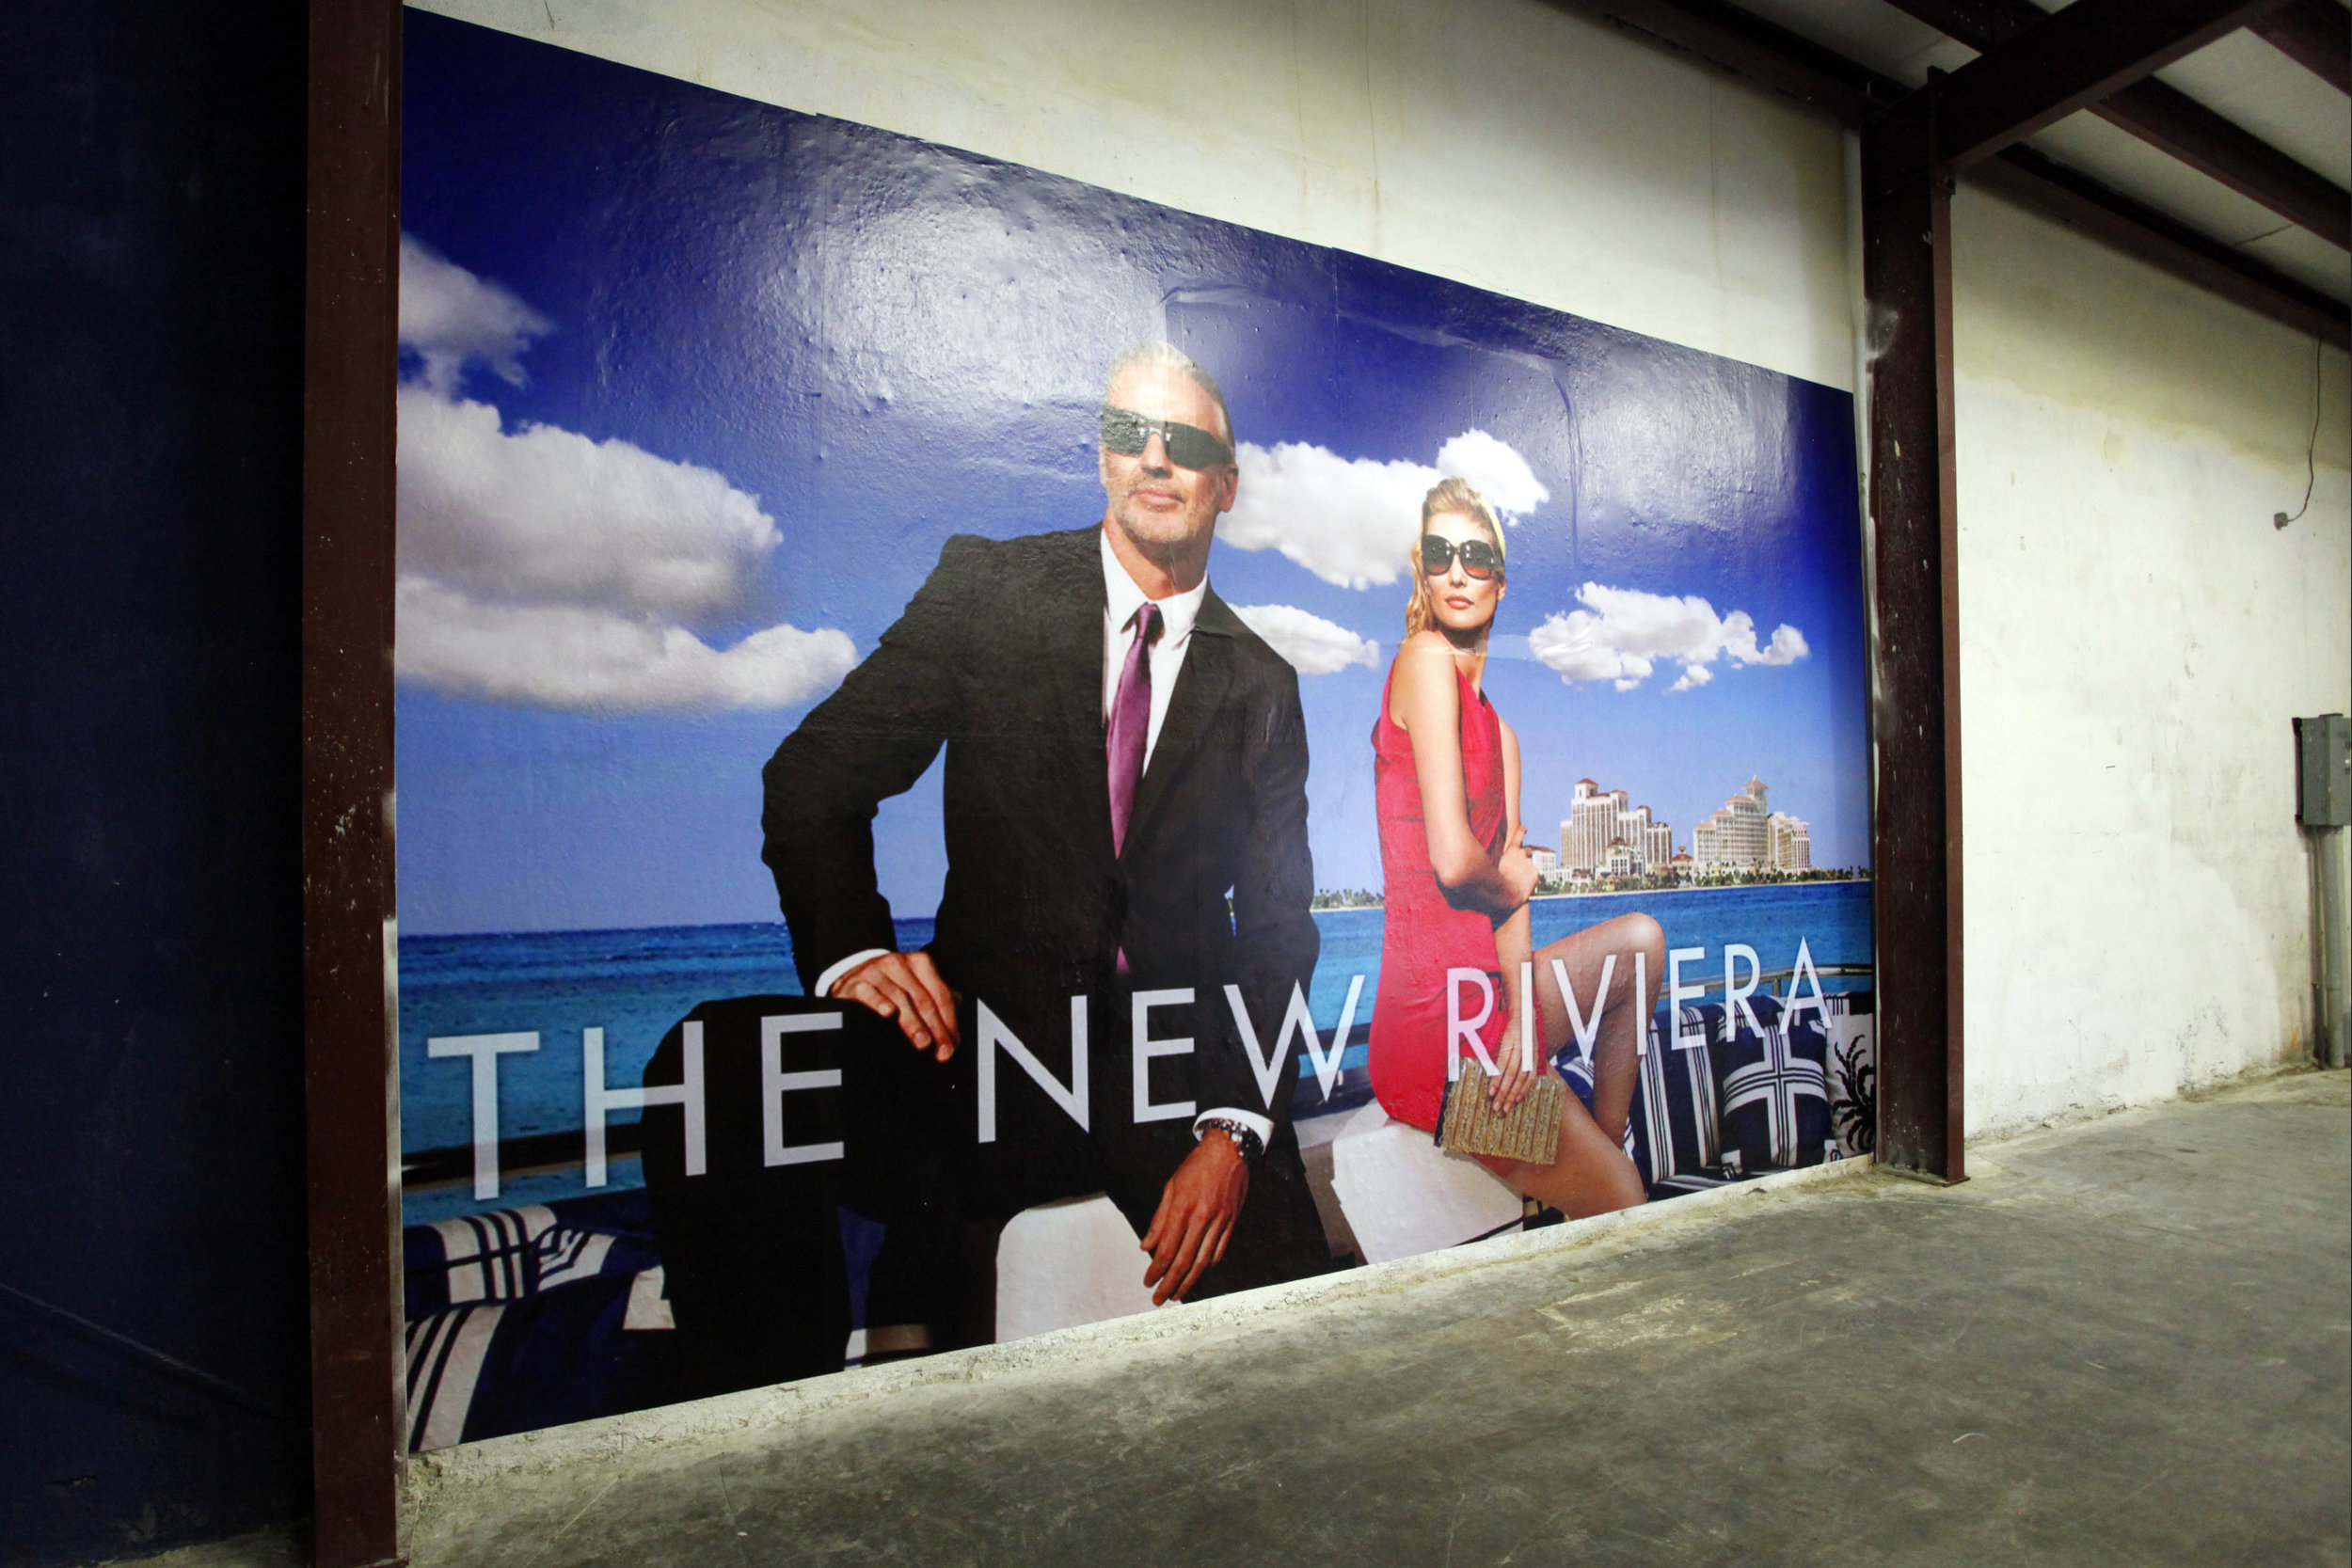 """""""The New Riviera"""". Blue Curry. Billboard poster. 20 x 12 feet, 2014. Image courtesy of the artist."""